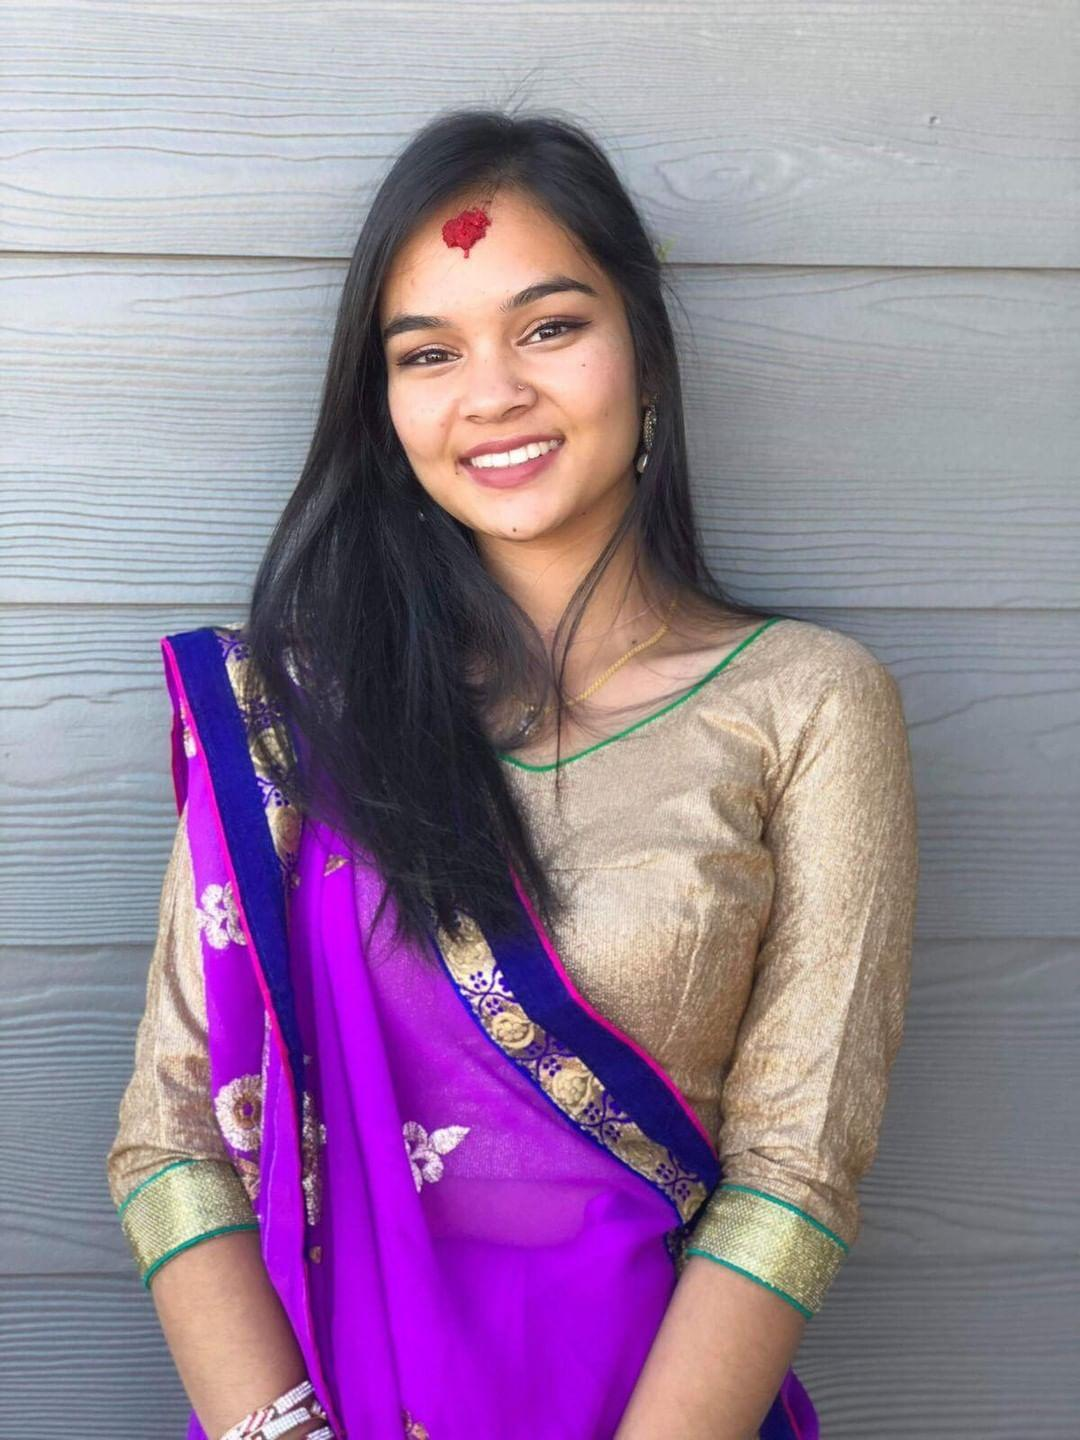 Kahtri poses in her traditional attire after performance